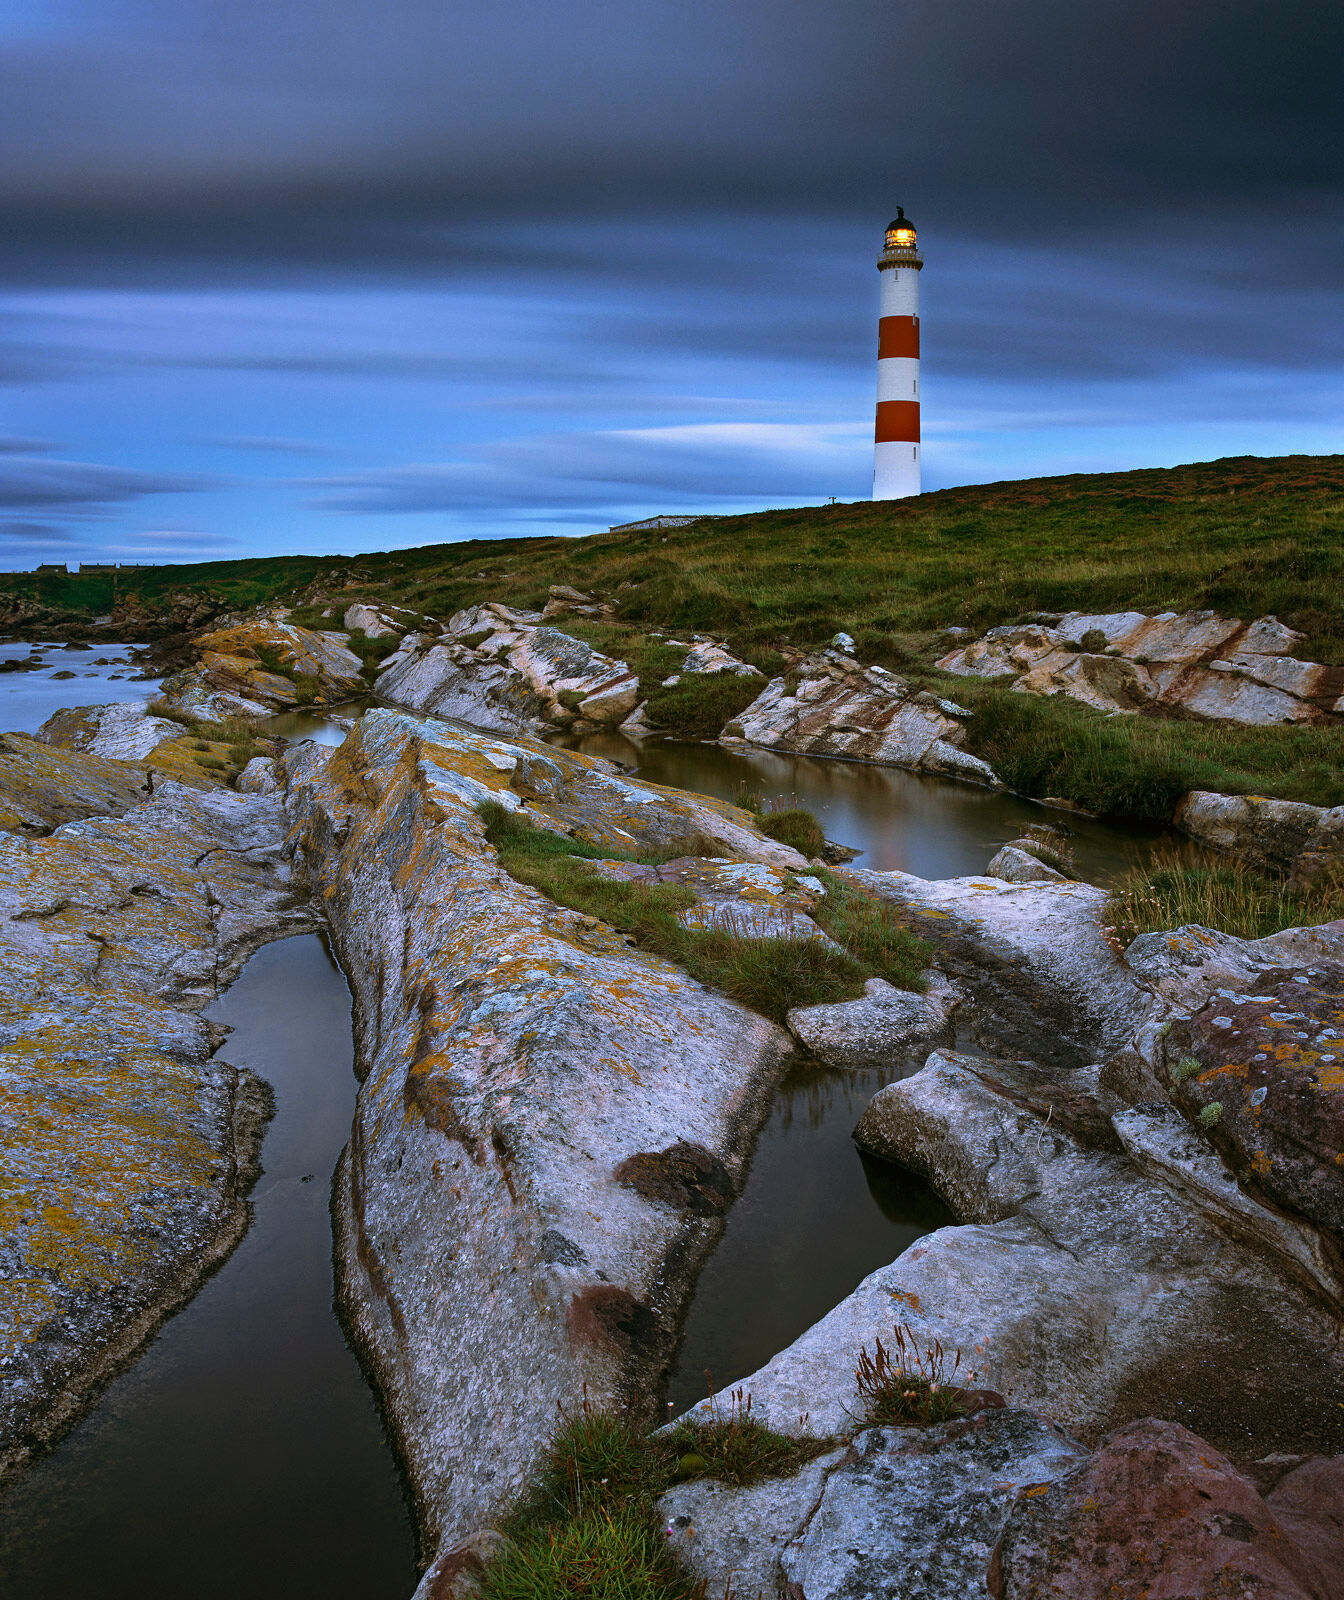 There are very few red and white striped lighthouses left in Britain and even fewer in Scotland but this one is nicely sited...